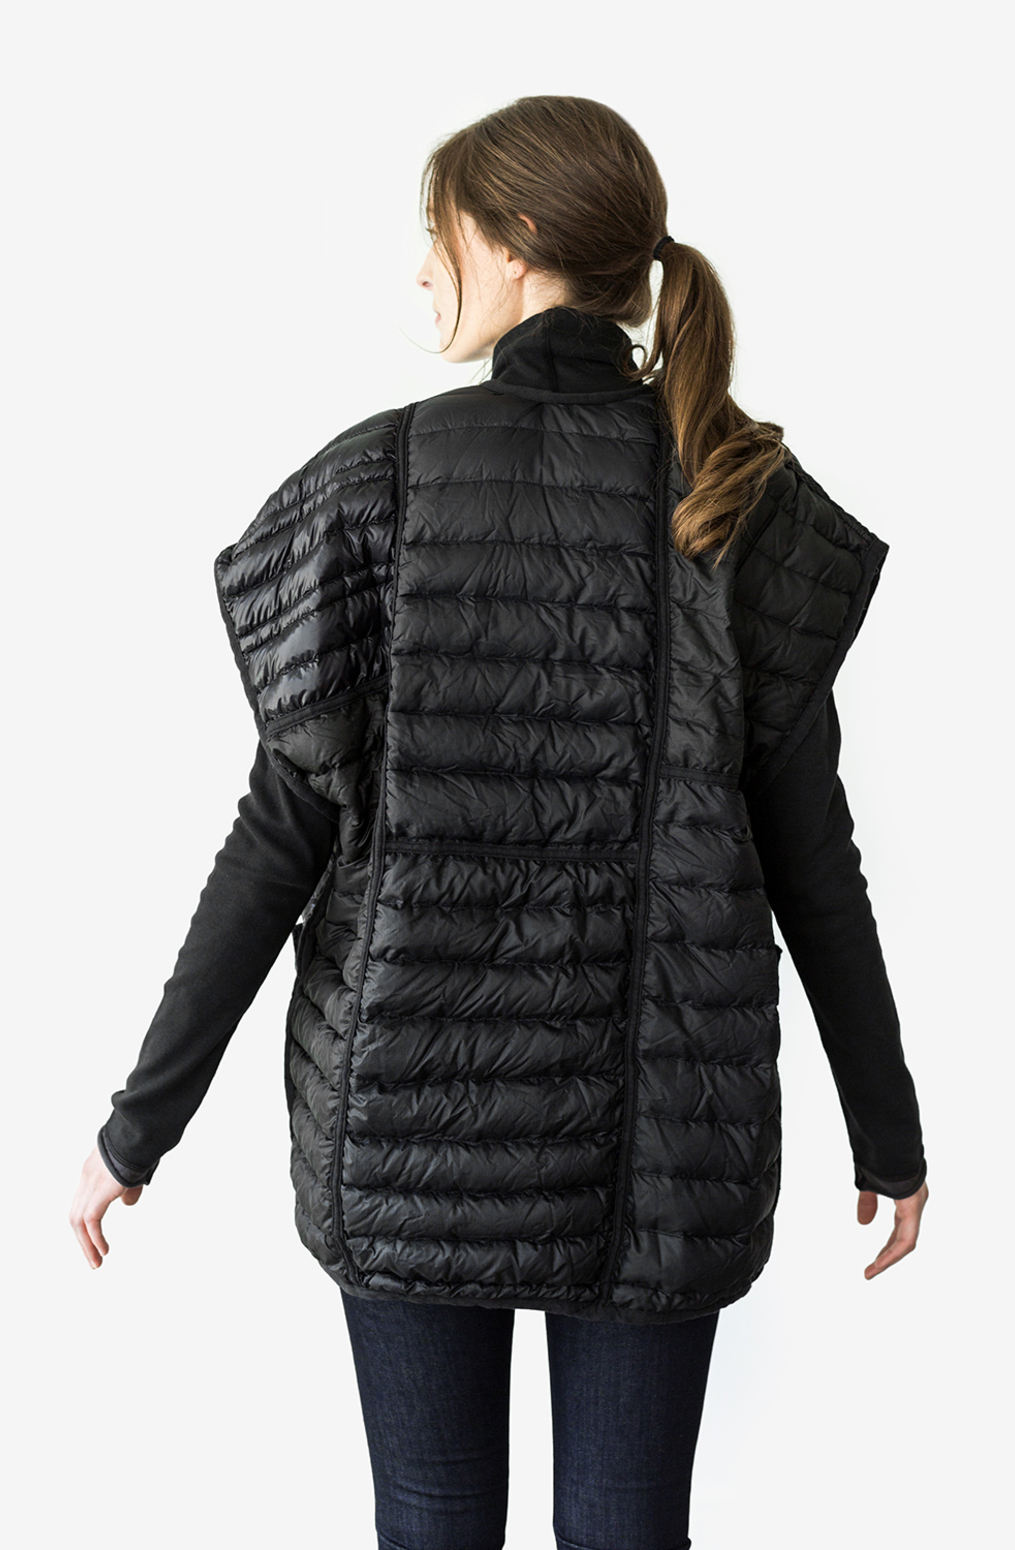 Alabama chanin patagonia collaboration reclaimed down vest accessory 2